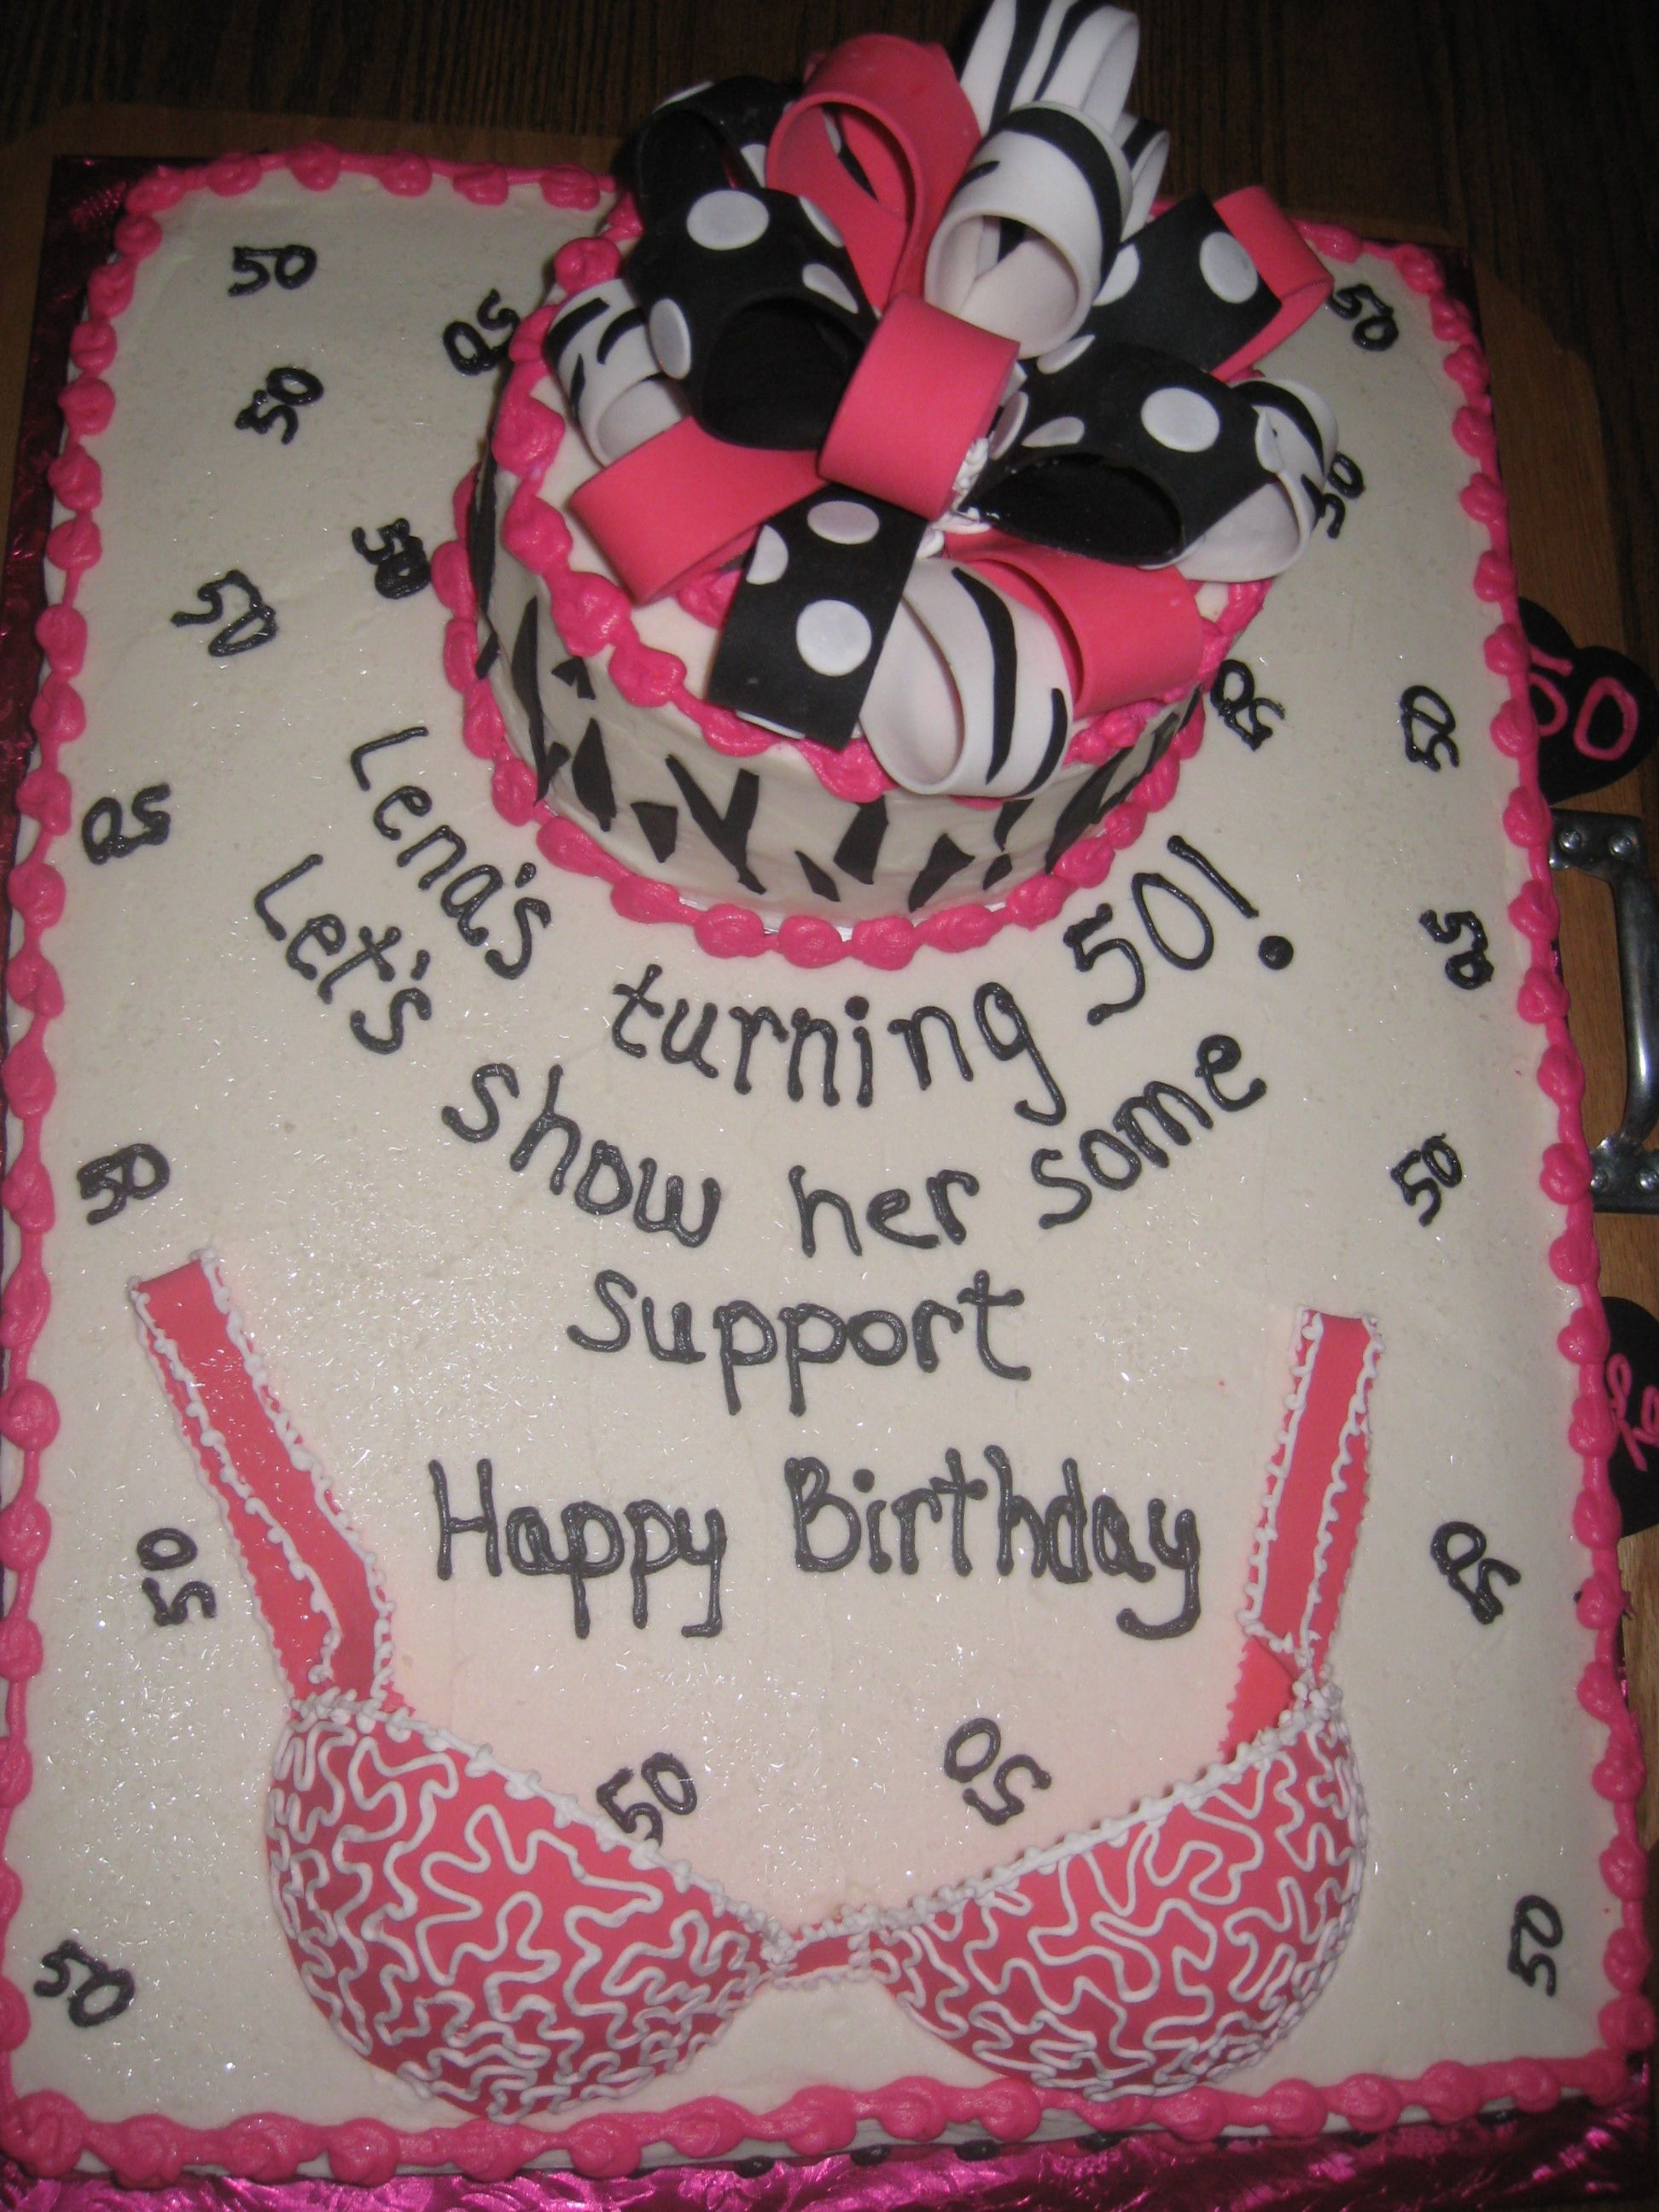 65th birthday sheet cake ; f4ce3d1c6e590b89315b9cd4729de1df